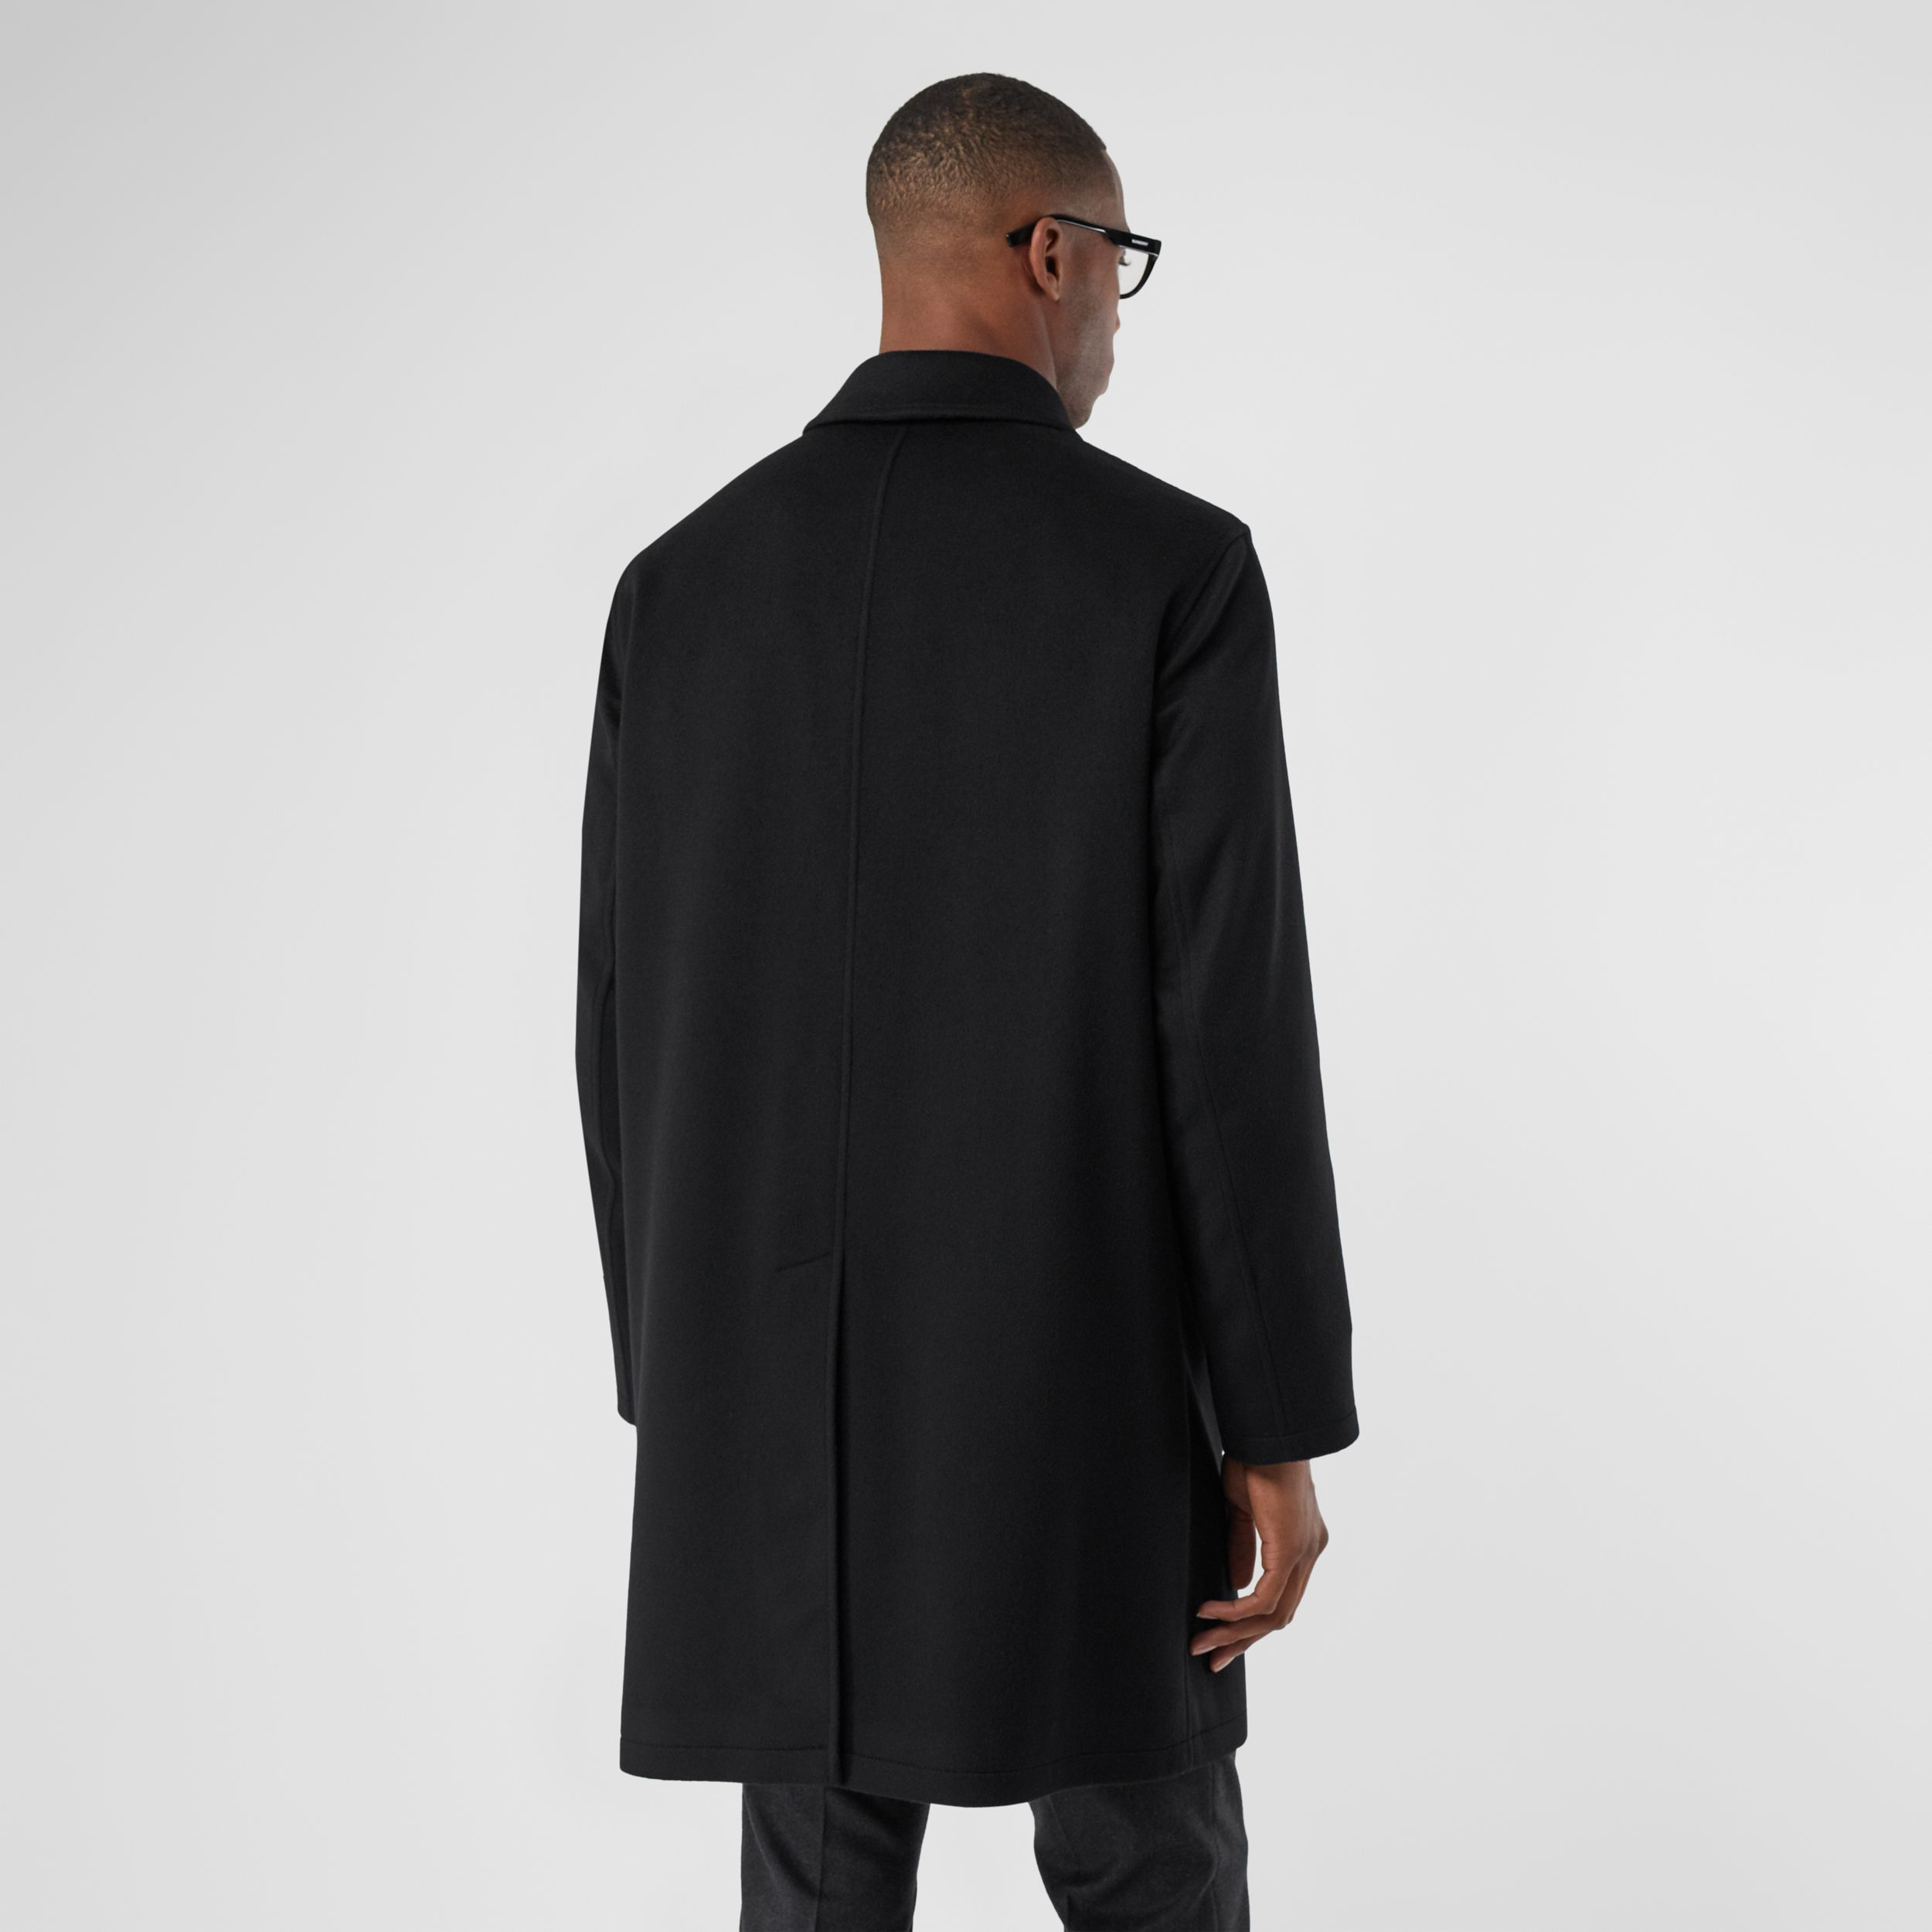 Cashmere Car Coat in Black - Men | Burberry - 3